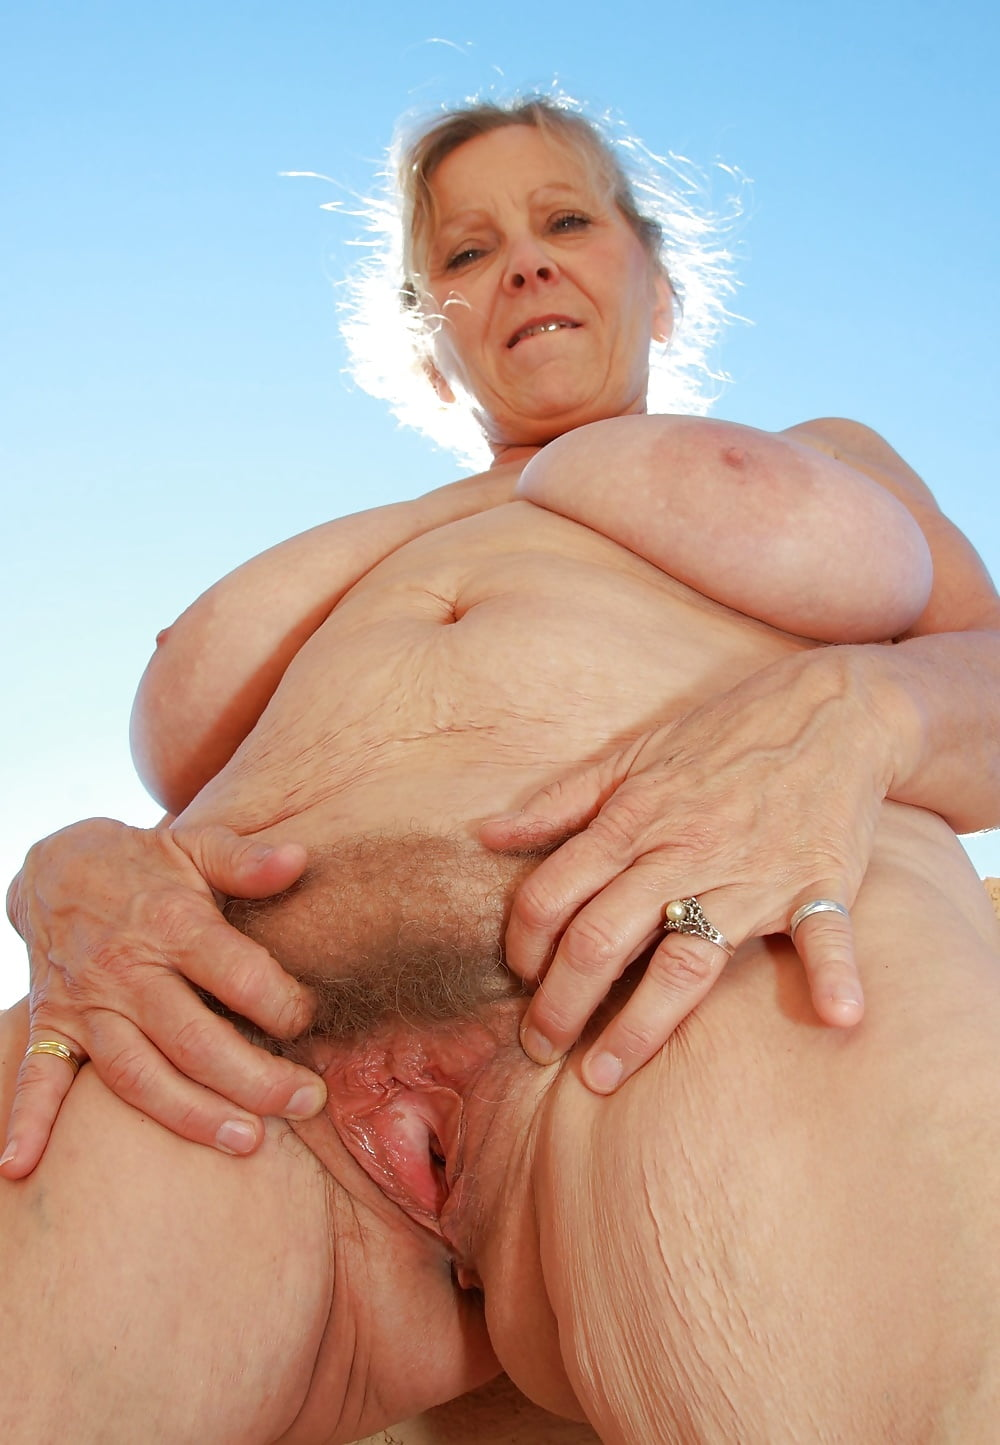 cum-shottures-naked-old-lady-vaginas